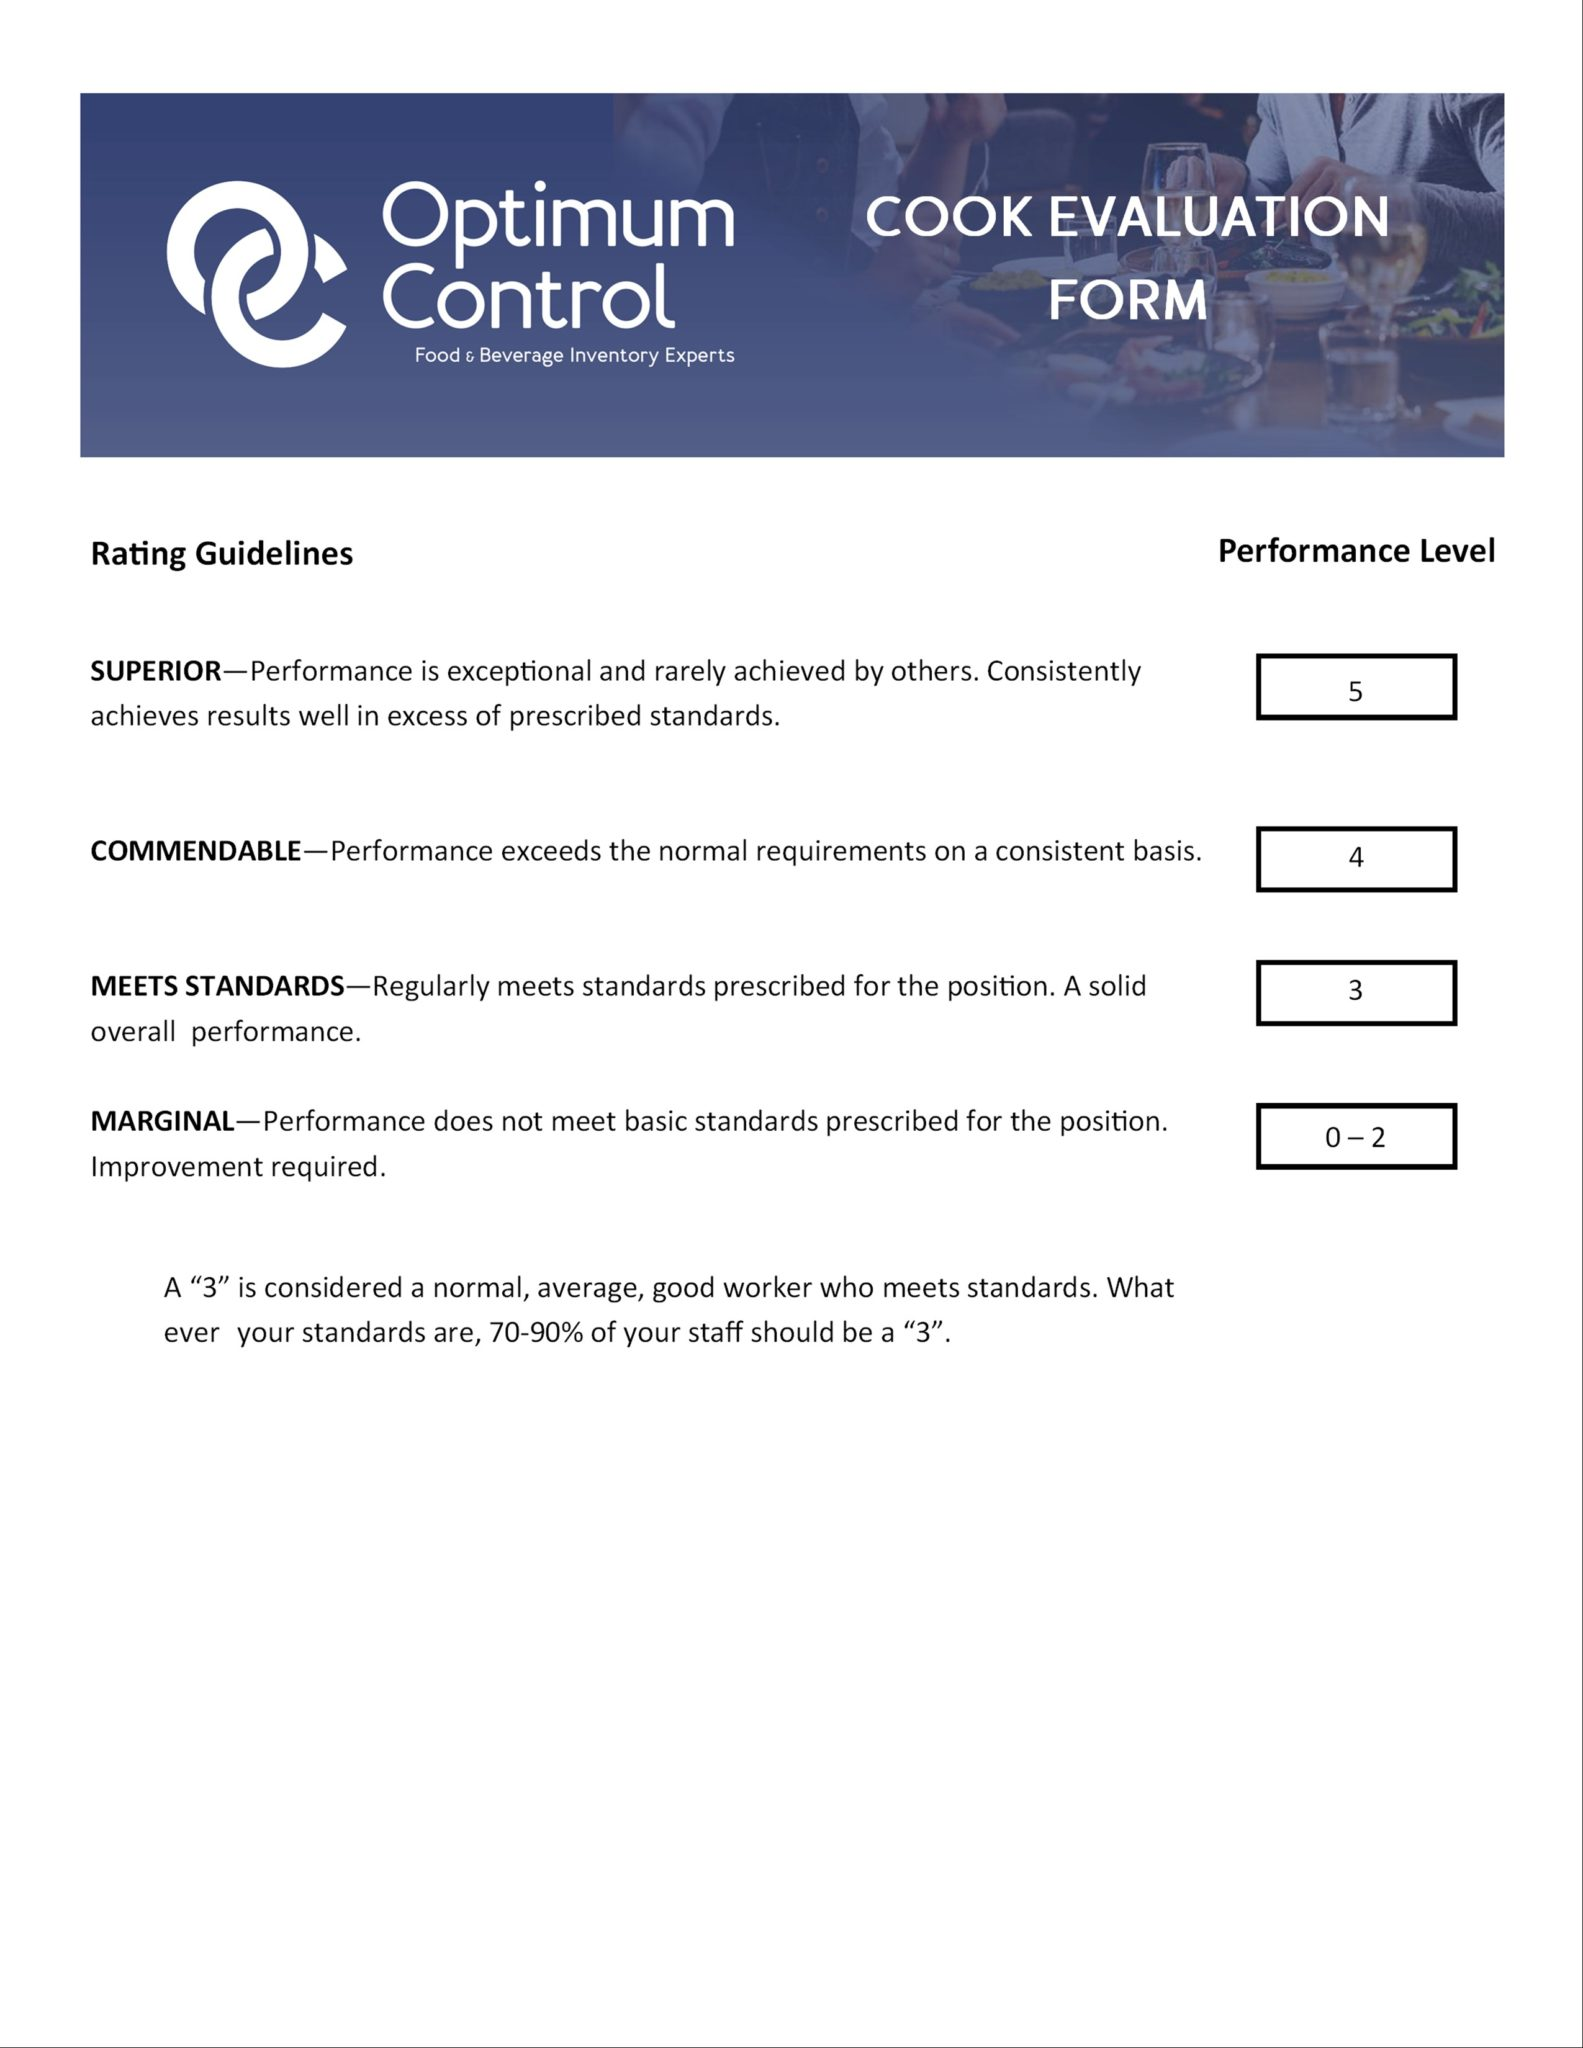 Cook Evaluation Form